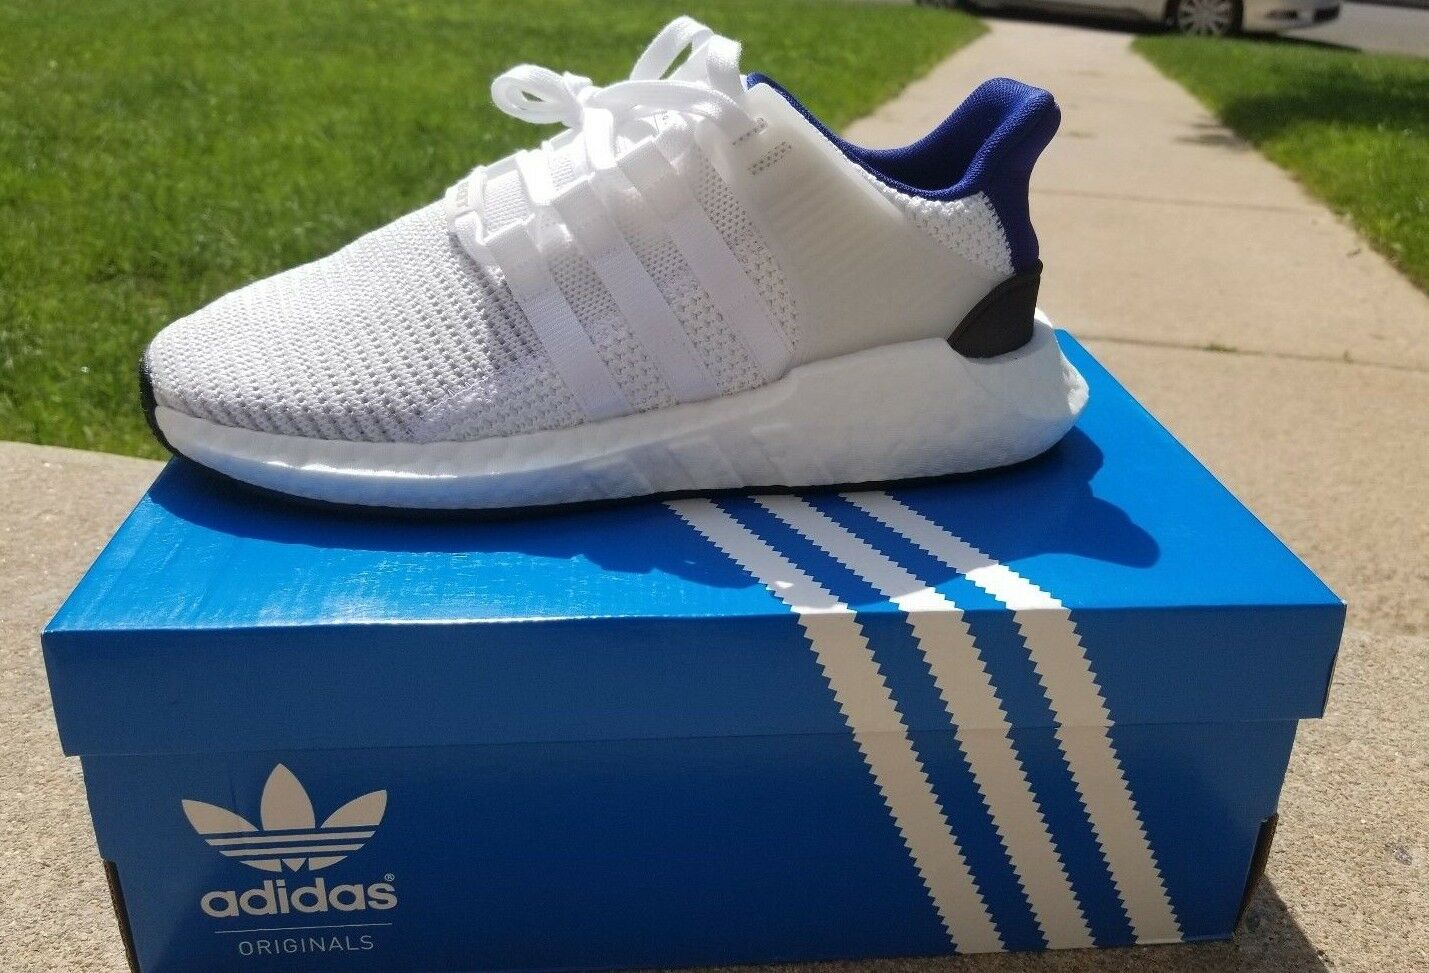 Adidas EQT 93/17 Mens Size 9 (Deadstock) Color: White and Royal